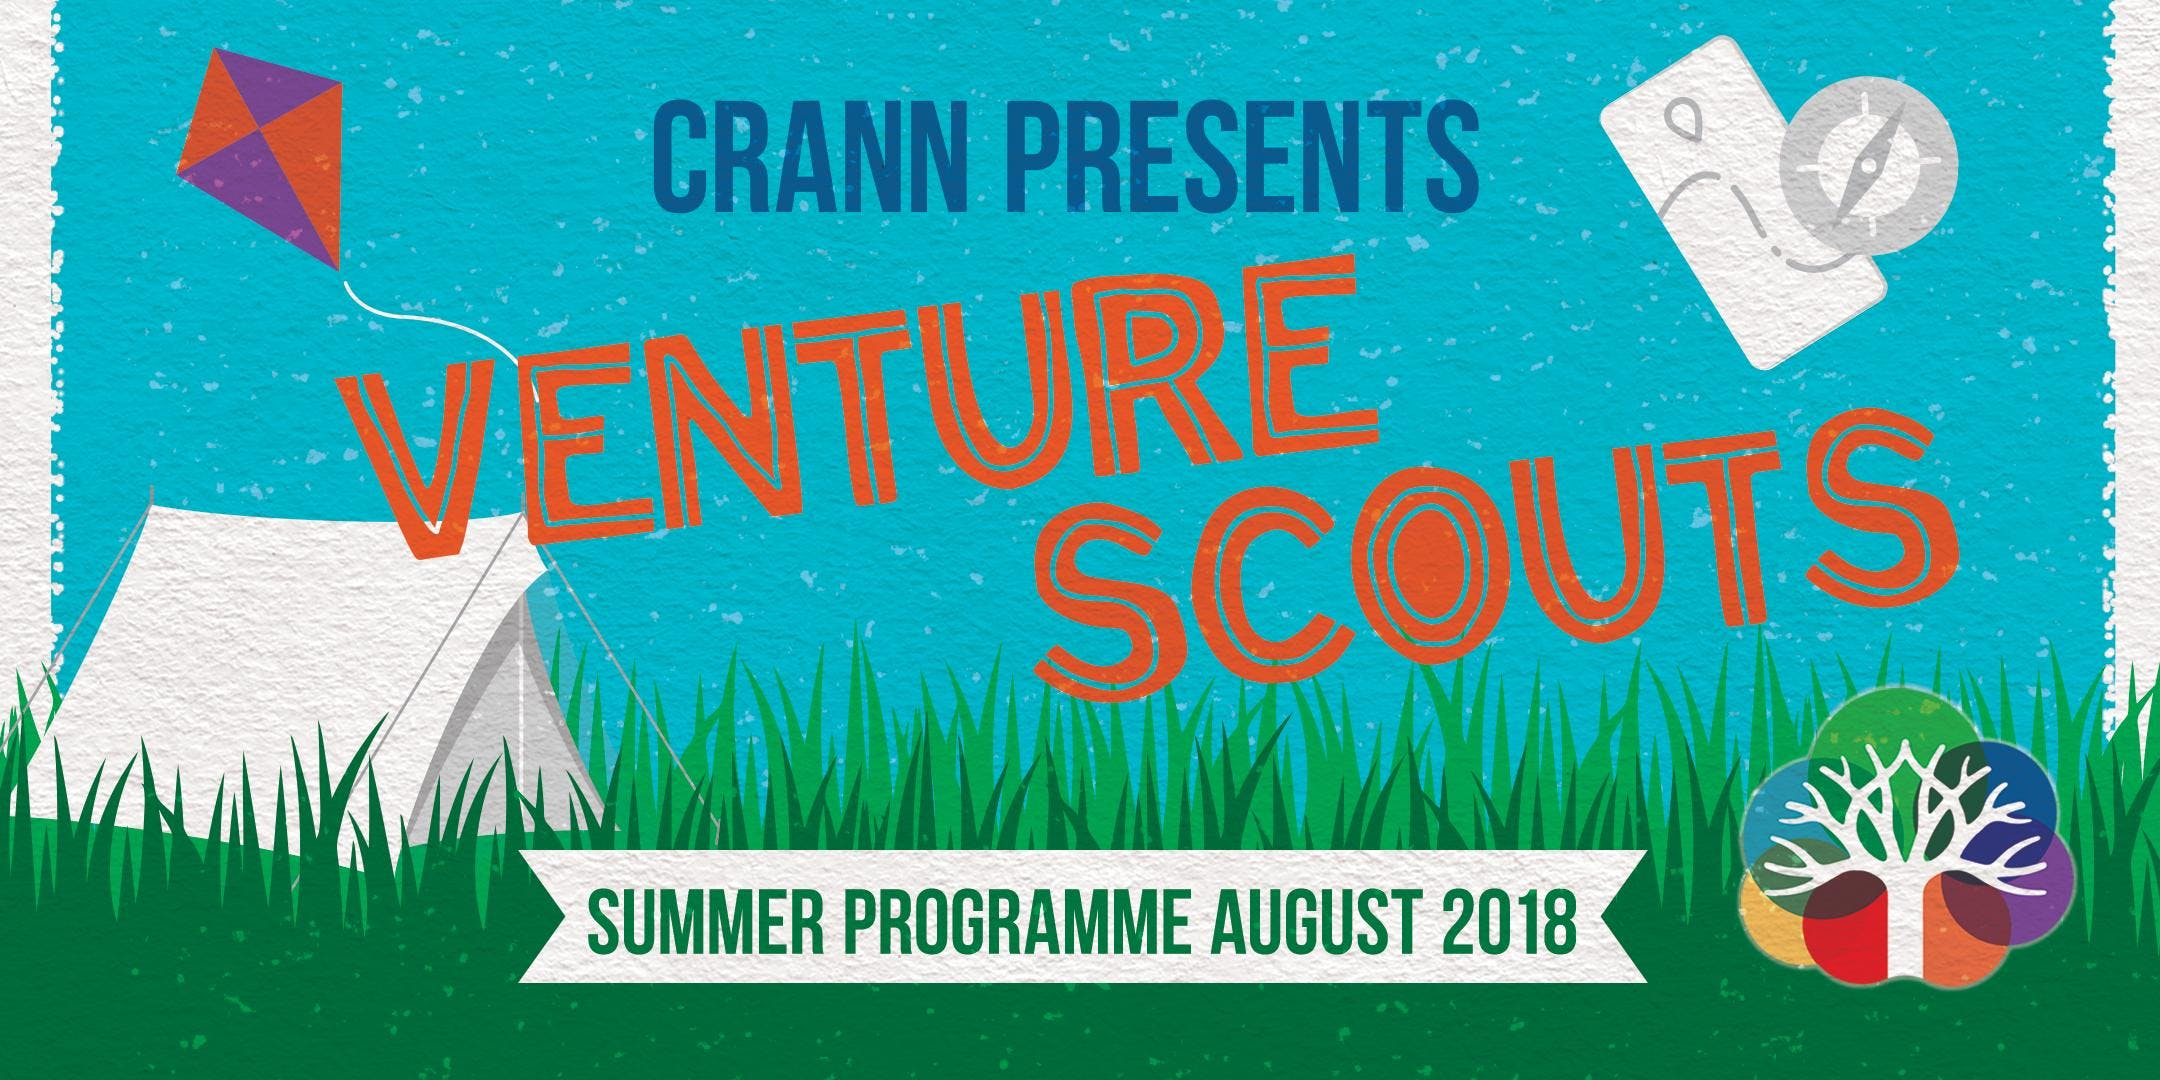 Crann Summer Programme-Scouts (Pioneering) Family Day for Siblings and Parents of Children with Spina Bifida/Hydrocephalus